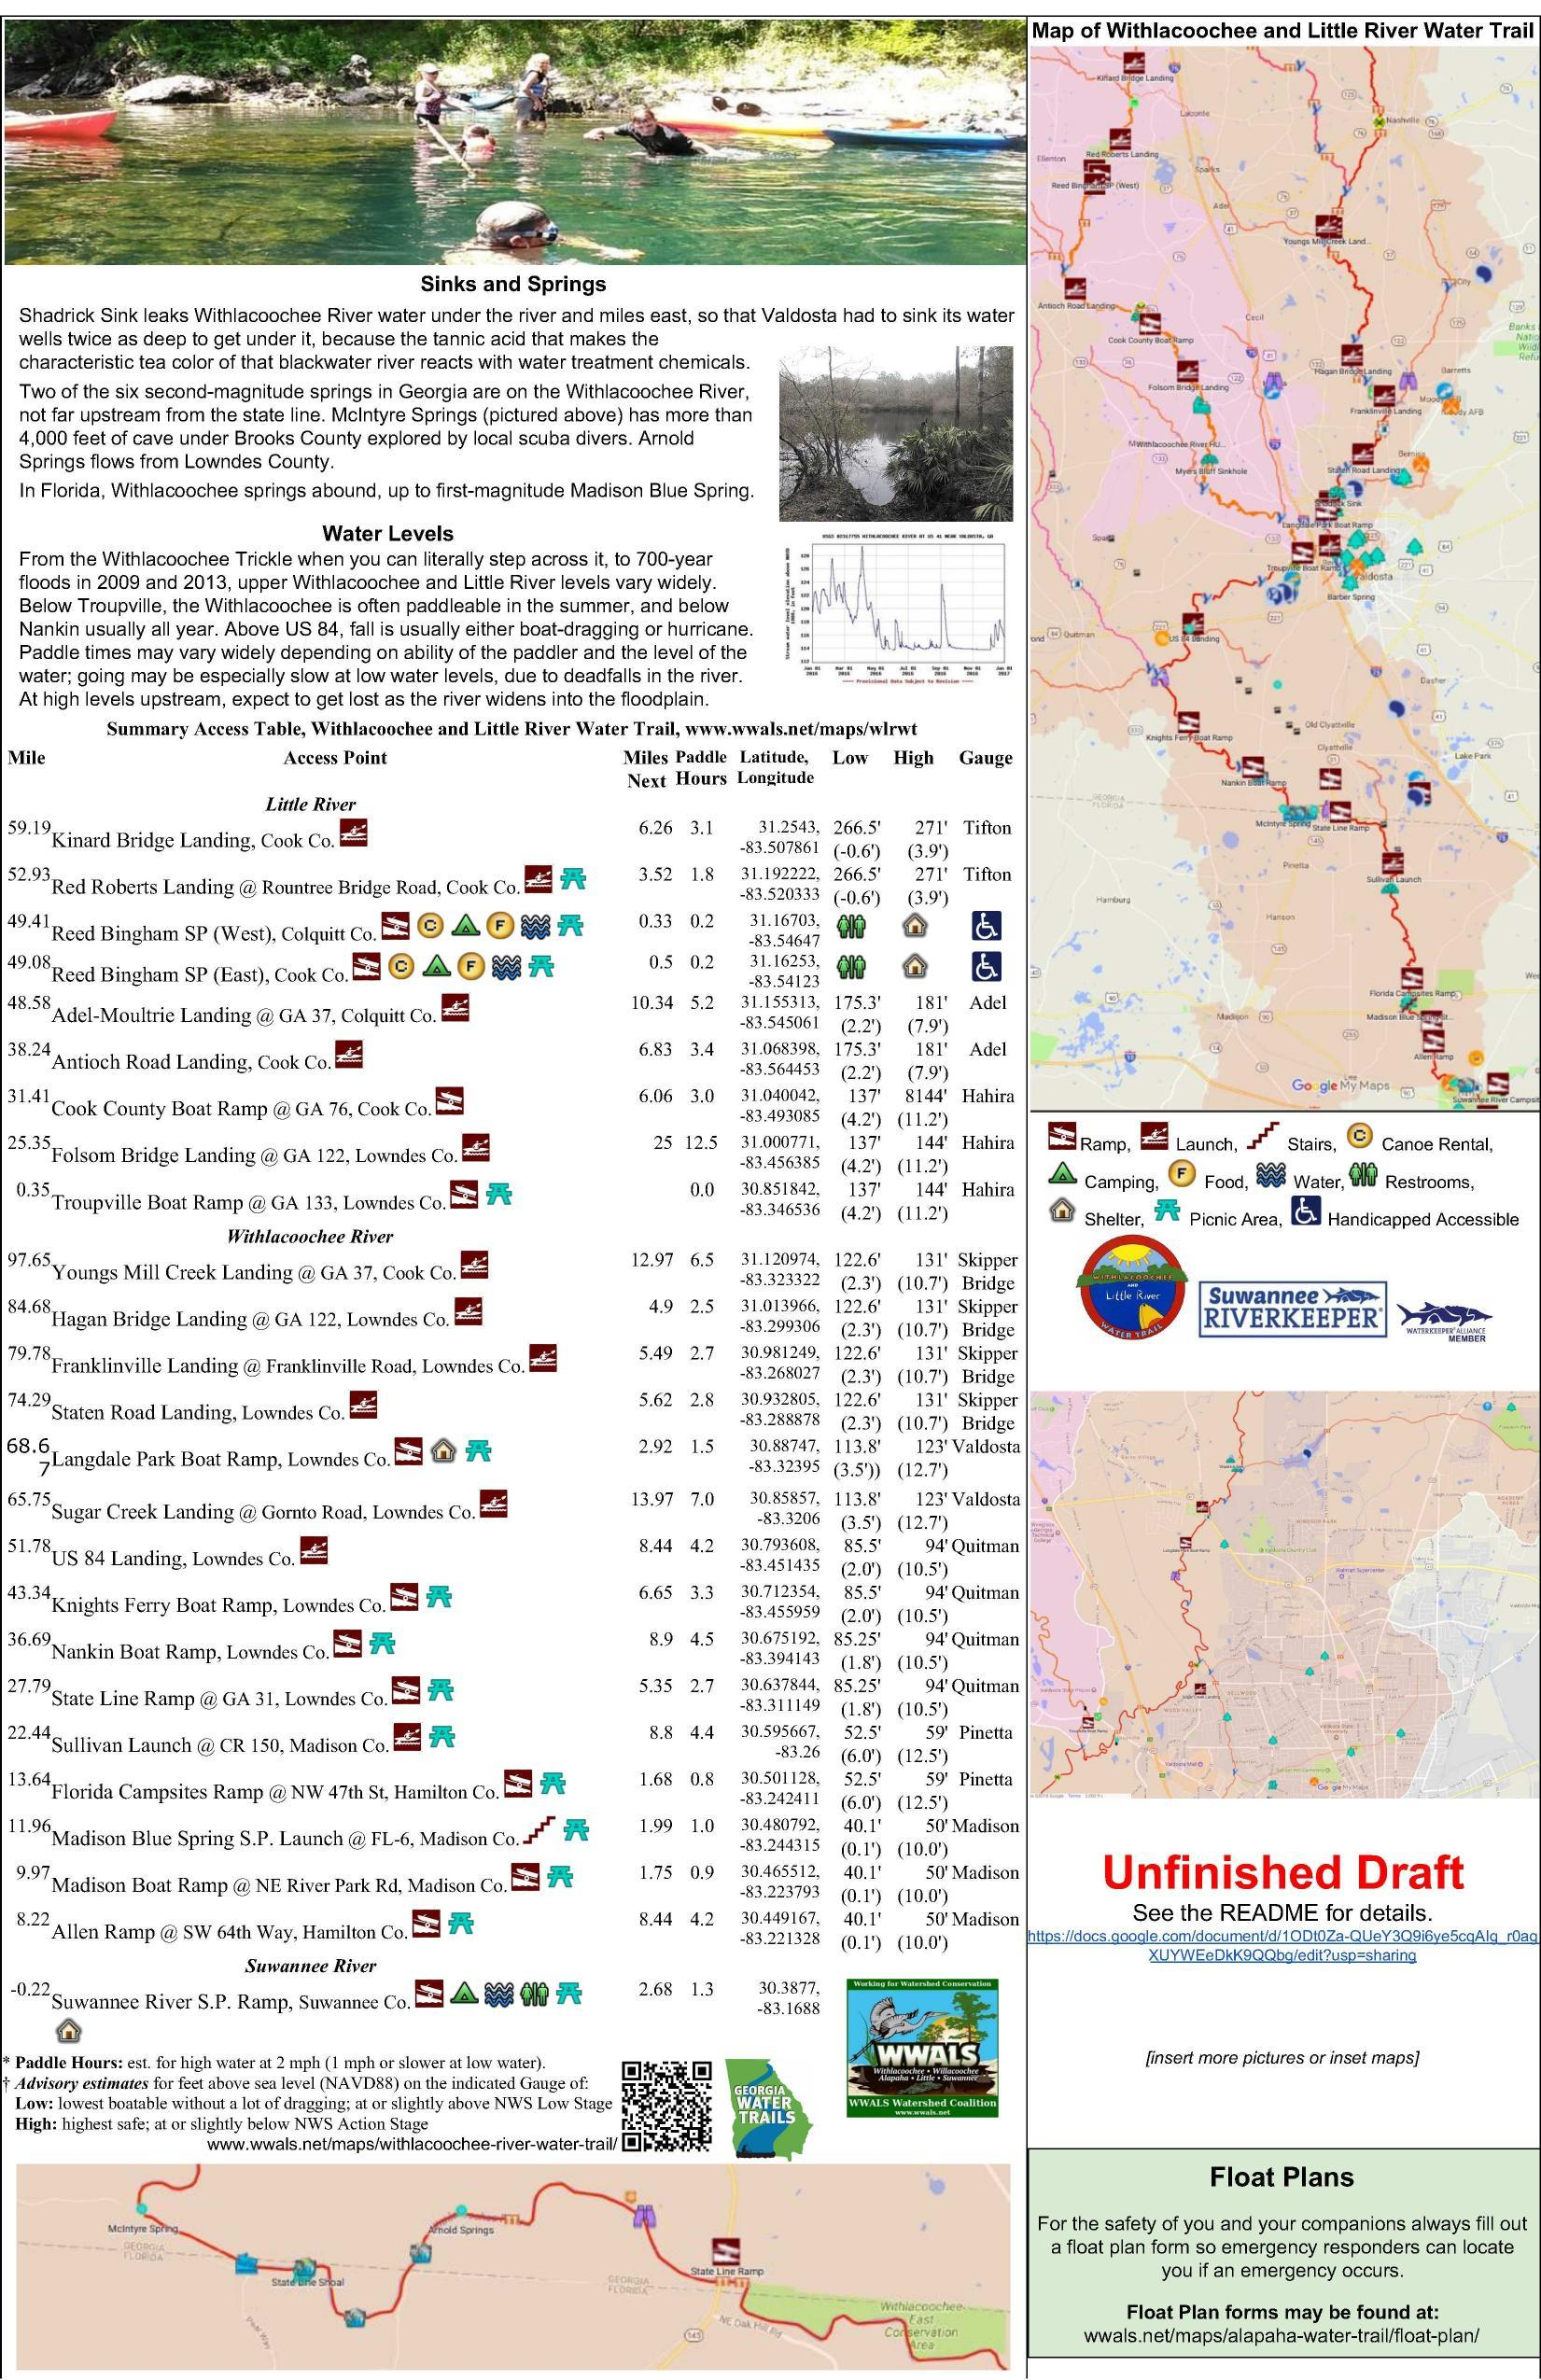 1651x2550 WLRWT Mapside, WLRWT, in Brochures: Trails Committee Meeting, by John S. Quarterman, for WWALS.net, 19 August 2018